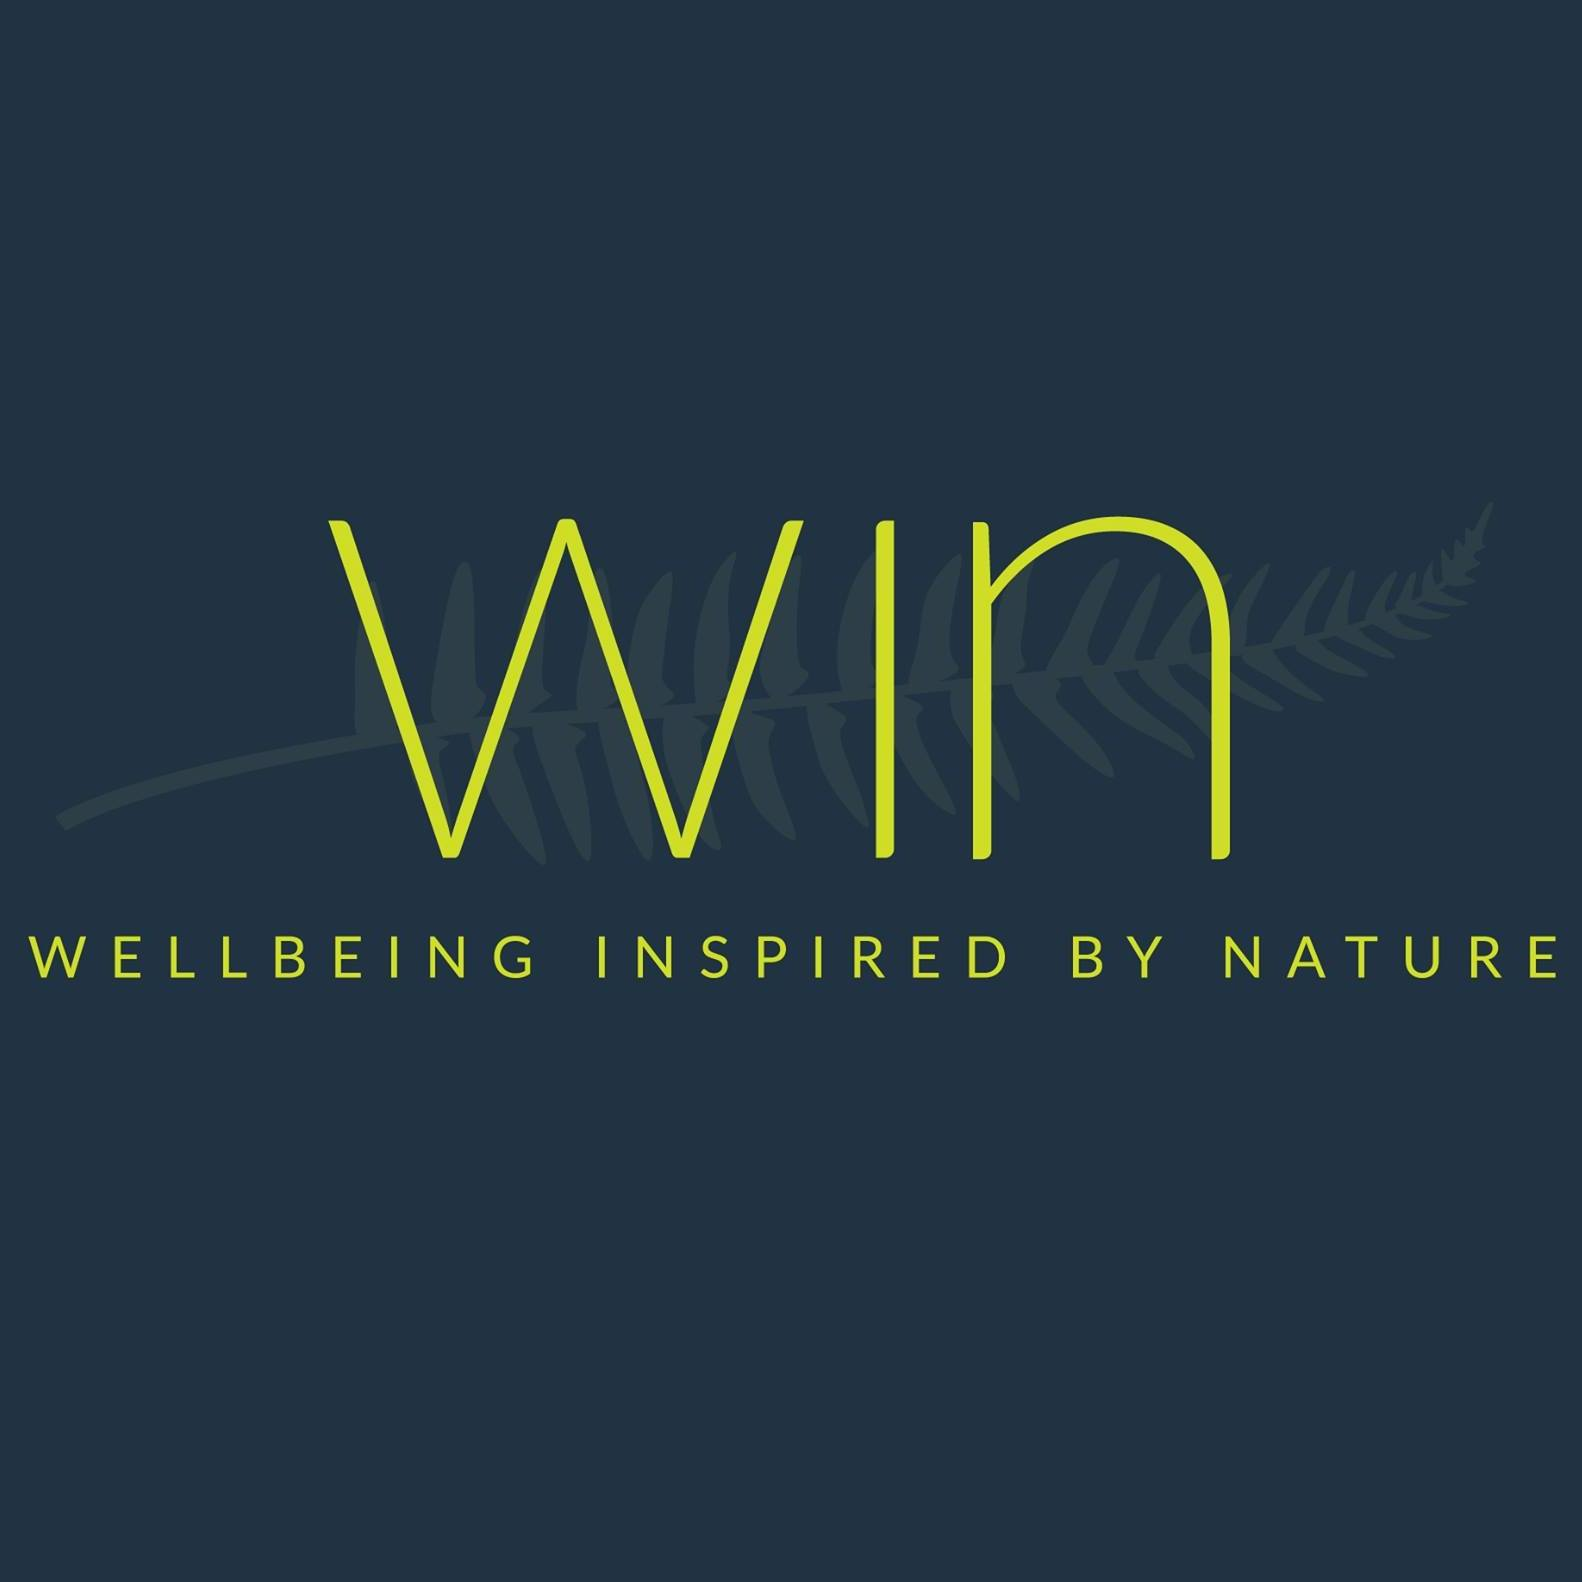 Wellbeing Inspired by Nature